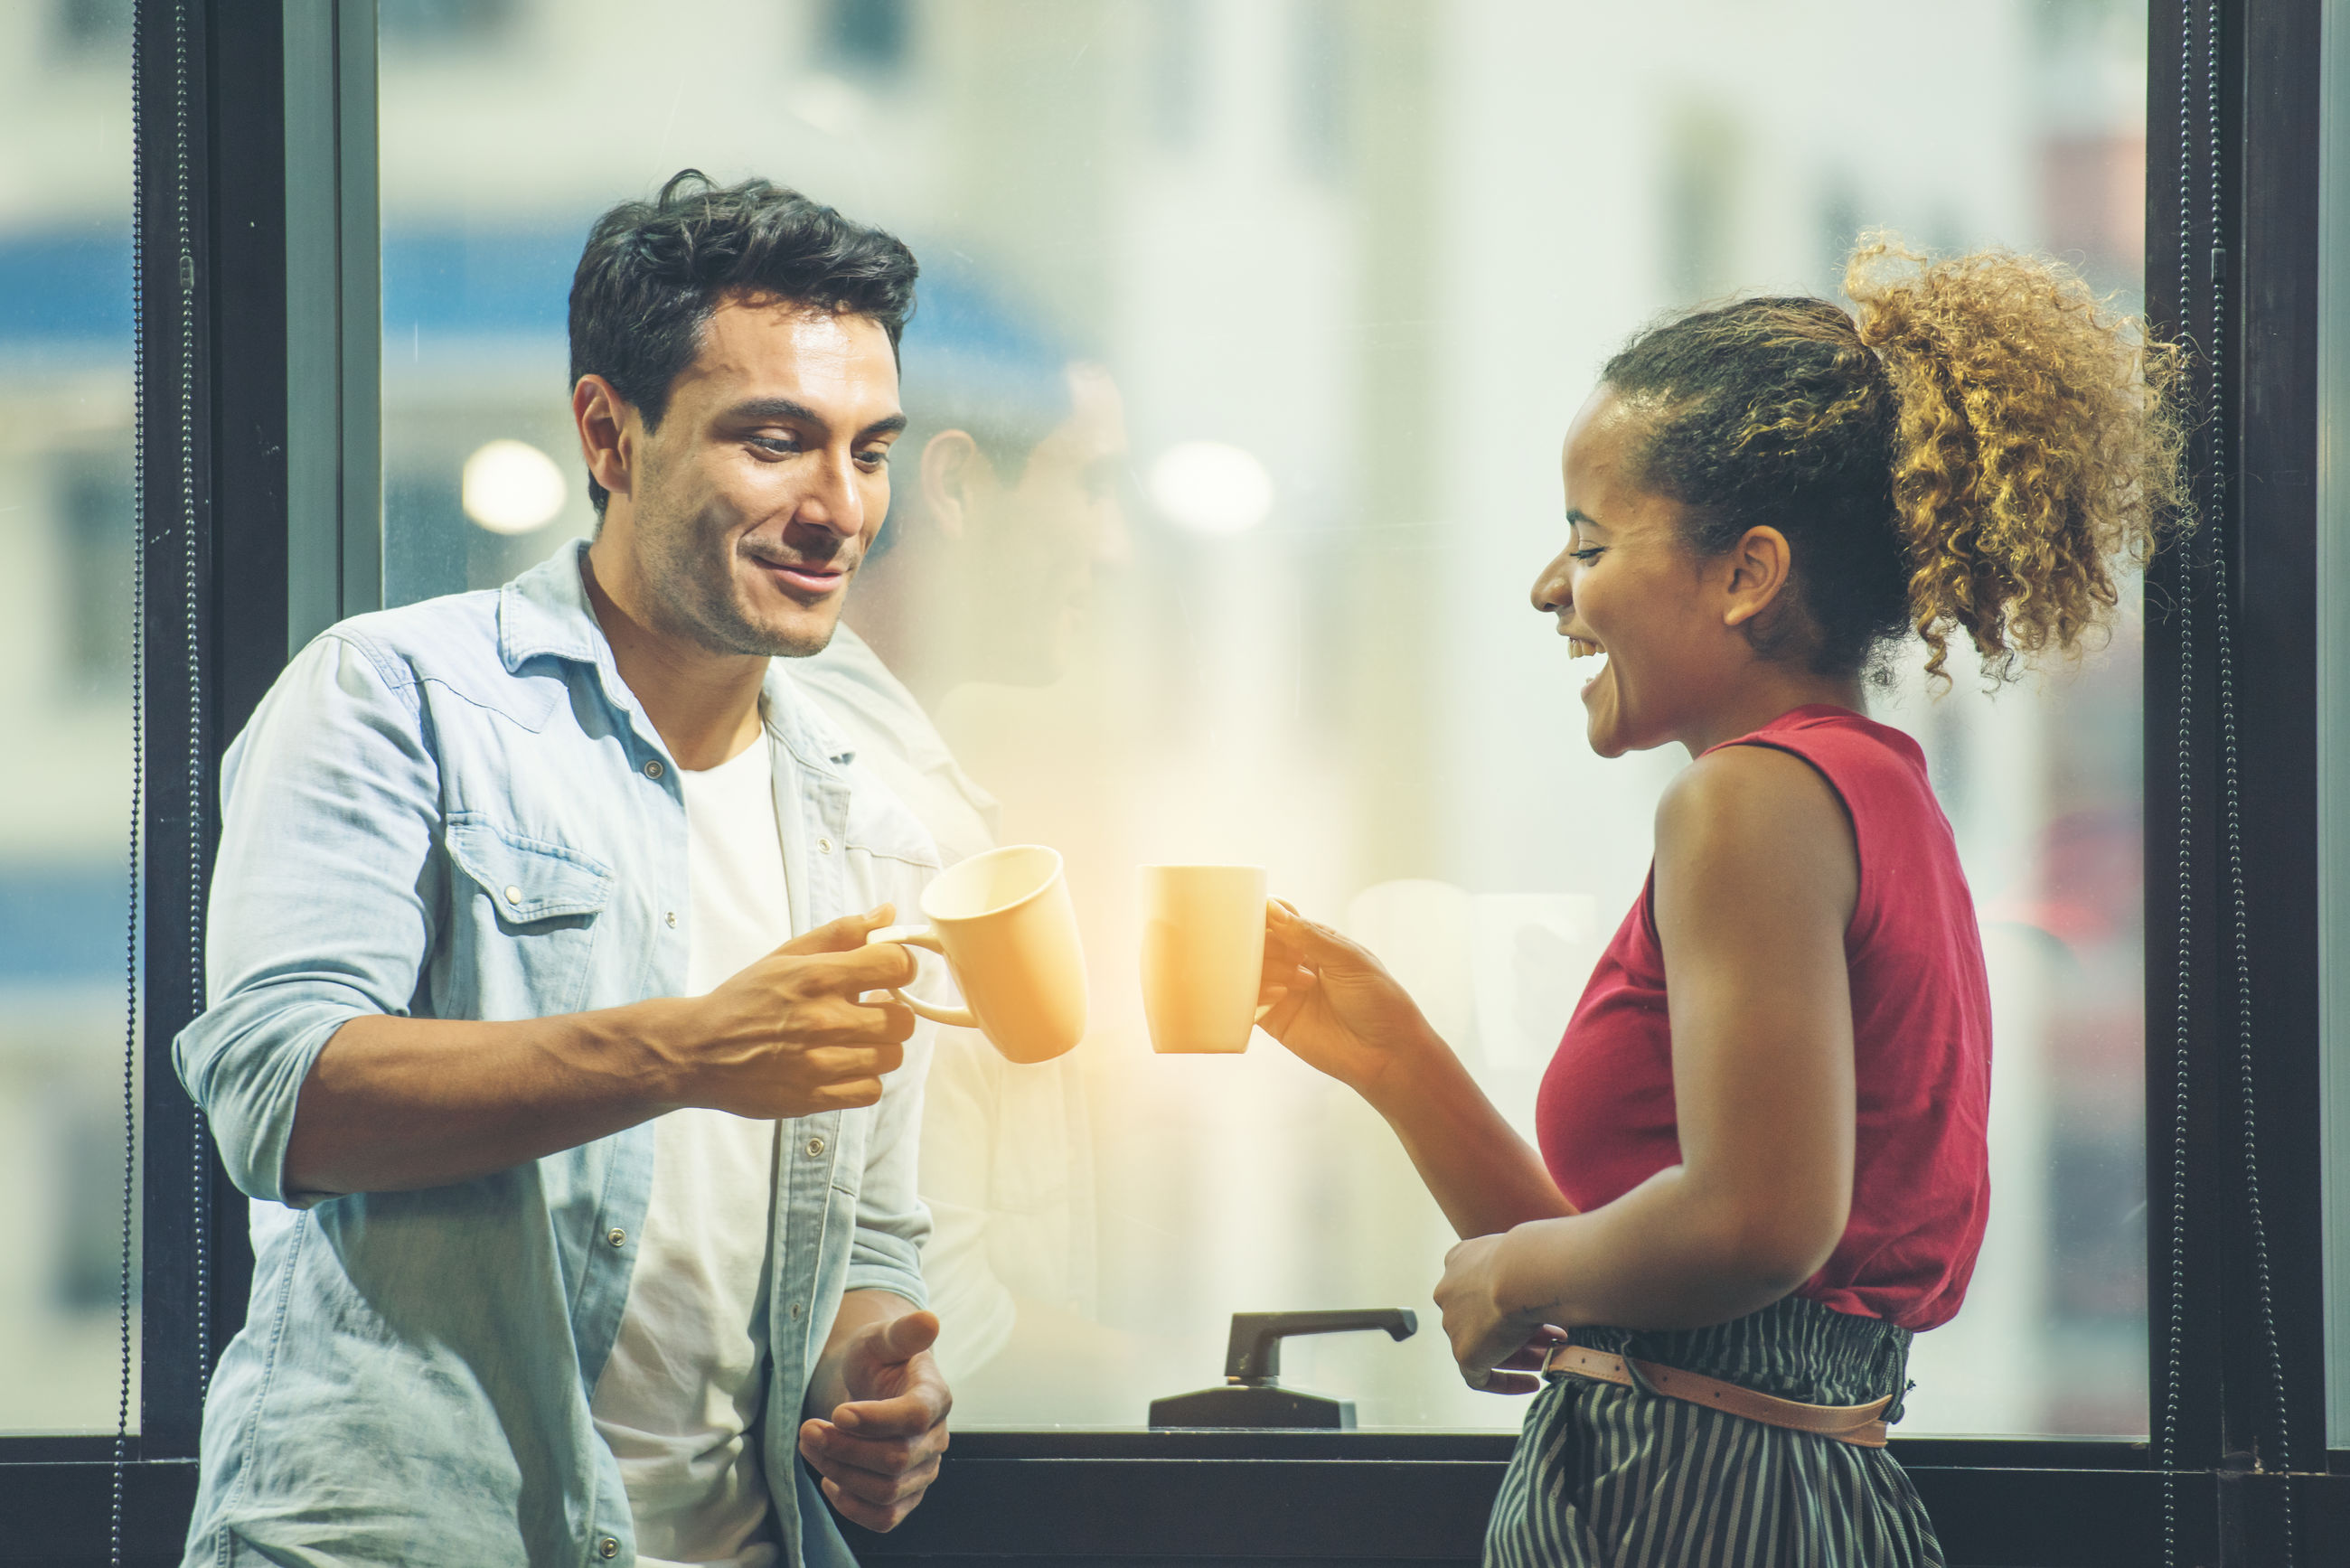 Smiling colleagues toasting cups while standing in office